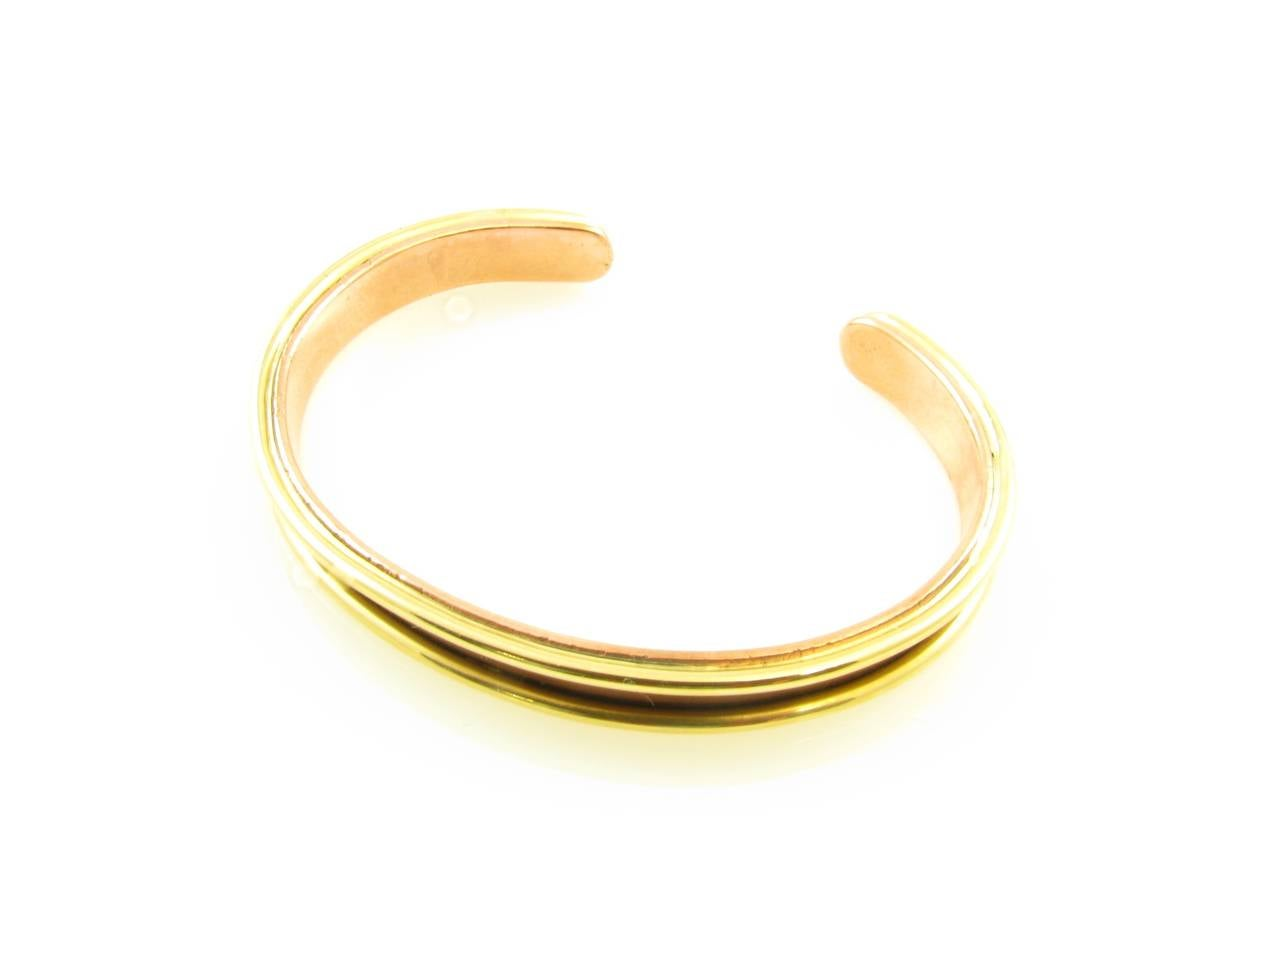 bangle bracelet geometric gold modern jewelry bangles cuff statement plated ultra wide bling jny